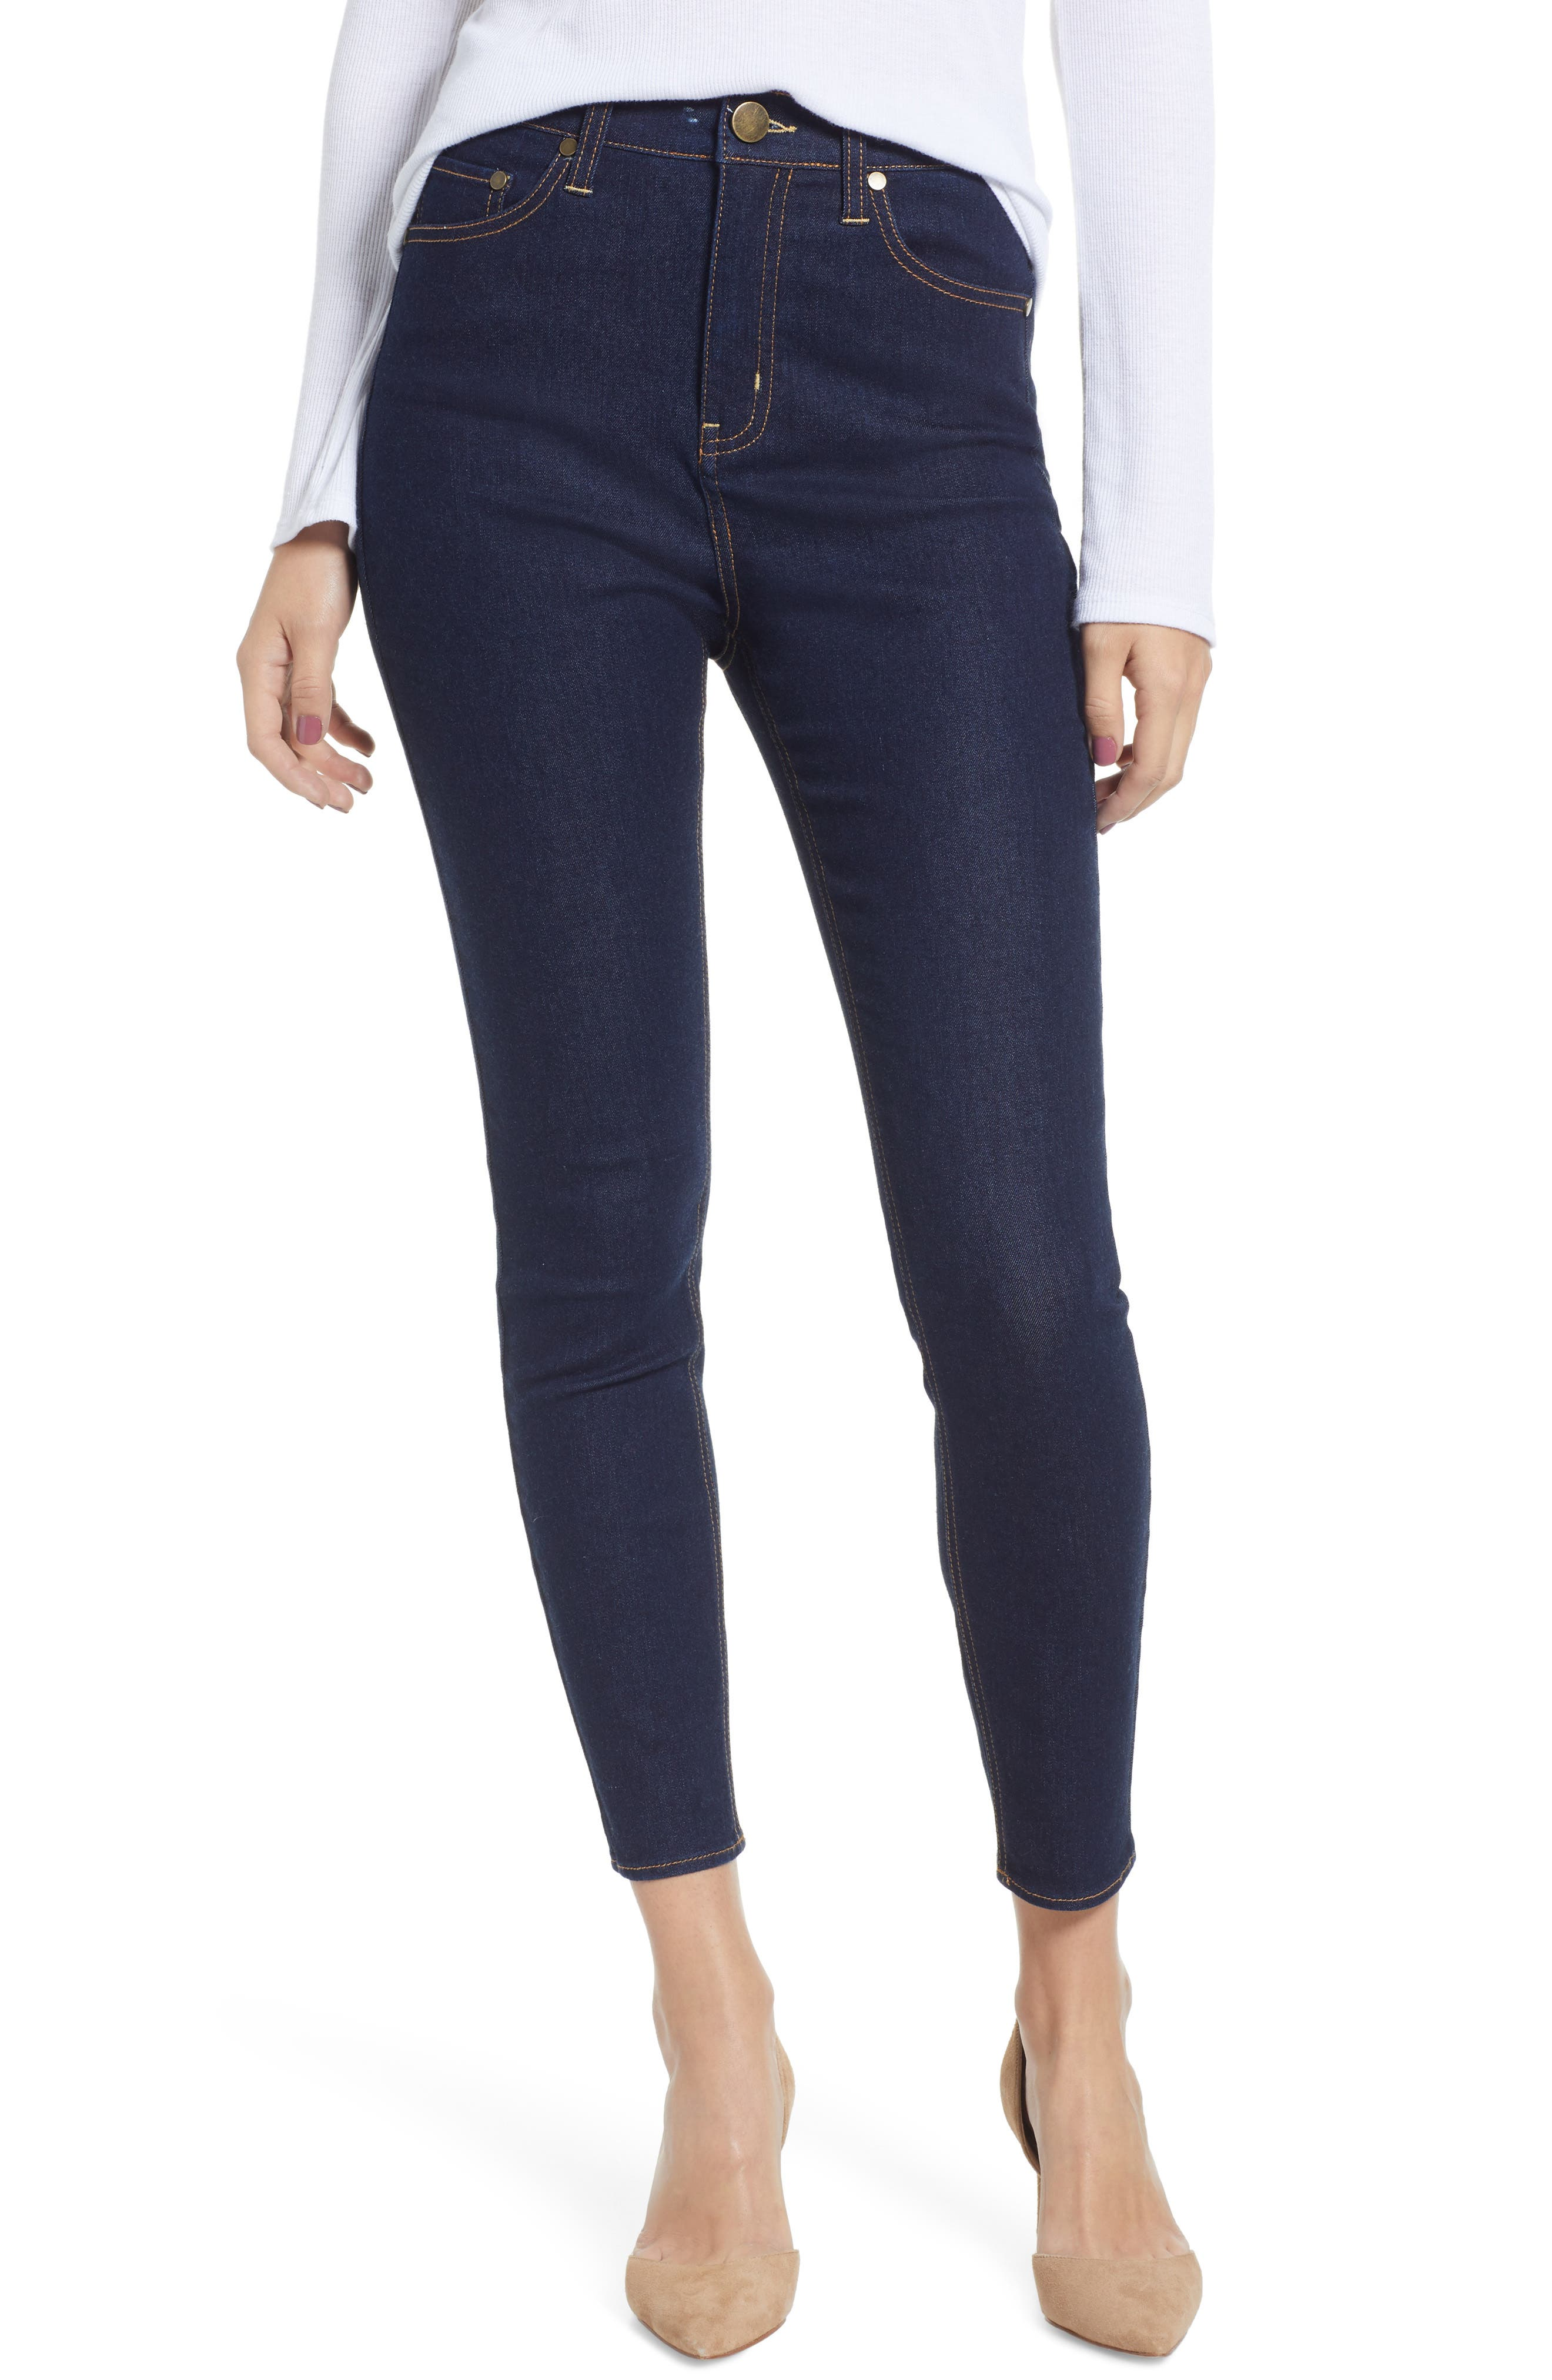 TINSEL High Waist Skinny Jeans, Main, color, 401